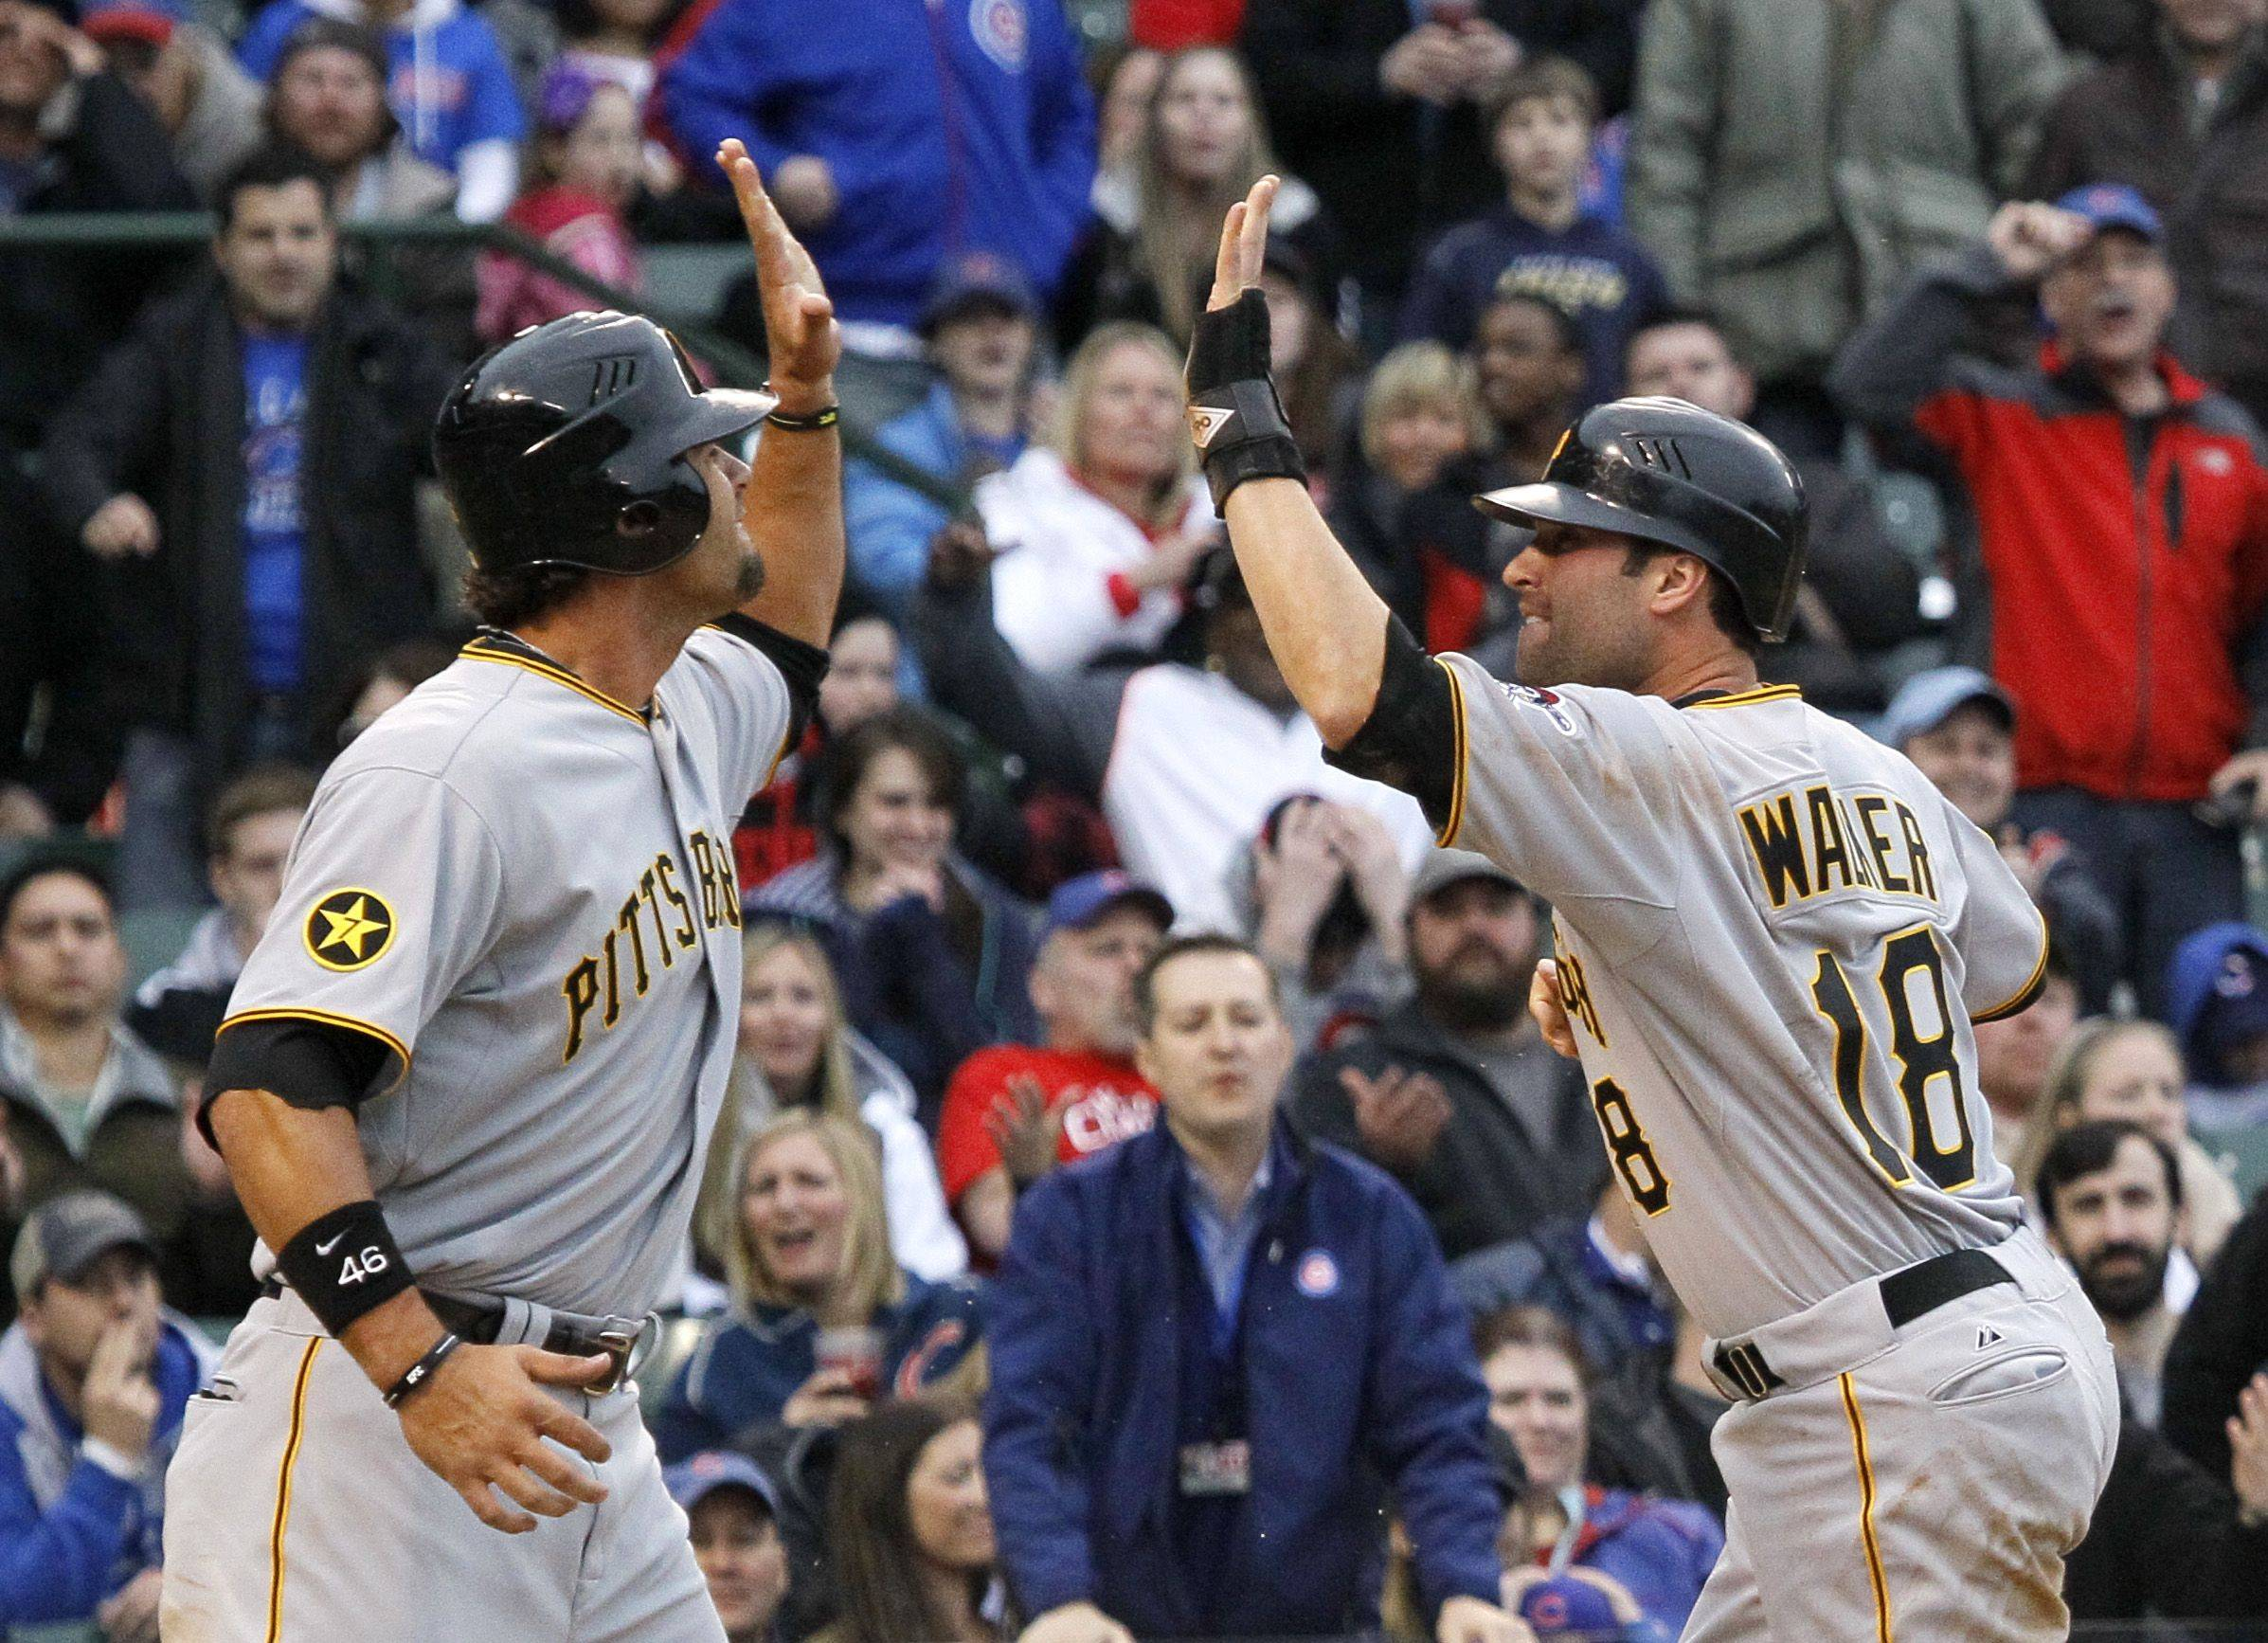 Pittsburgh Pirates' Garrett Jones, left, and Neil Walker celebrate after they both scored on a single by Pedro Alvarez during the ninth inning of a baseball game against the Chicago Cubs, Sunday, April 3, 2011 in Chicago. The Pirates won 5-4.